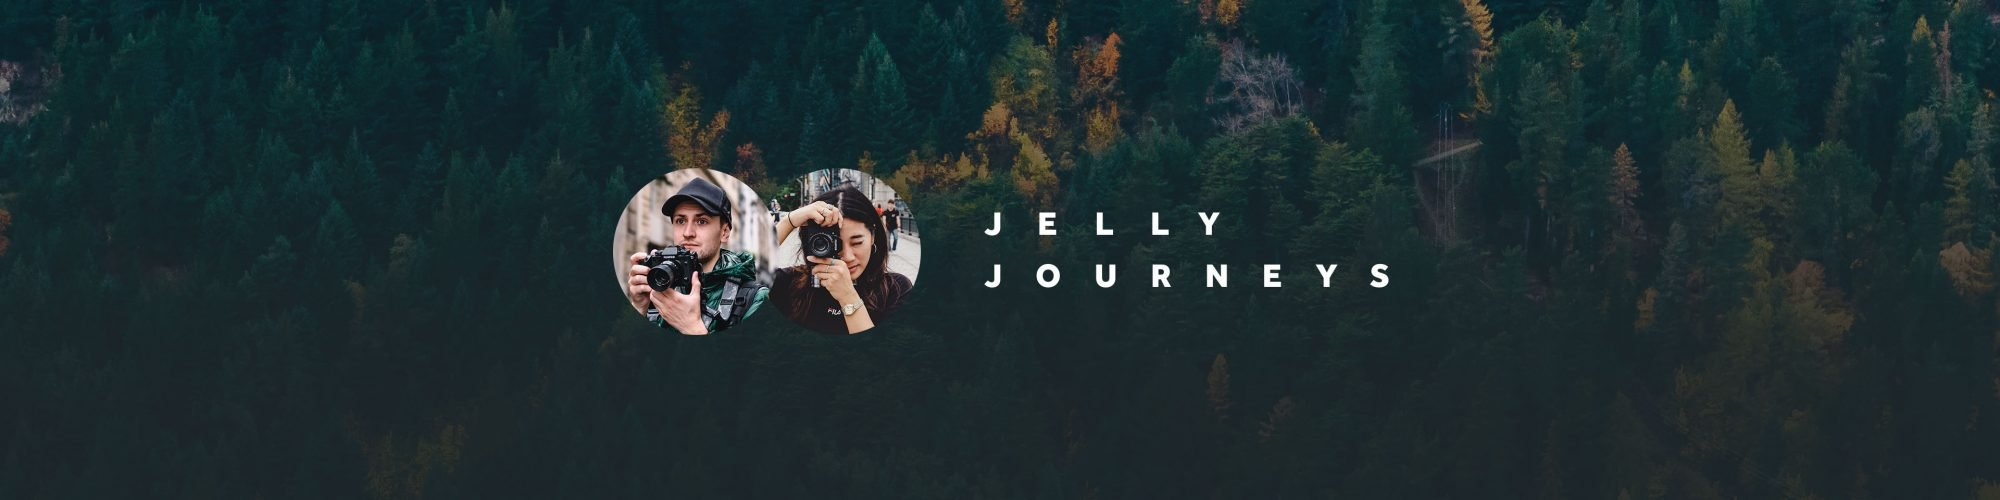 Jelly Journeys @joeallam and @ellythings